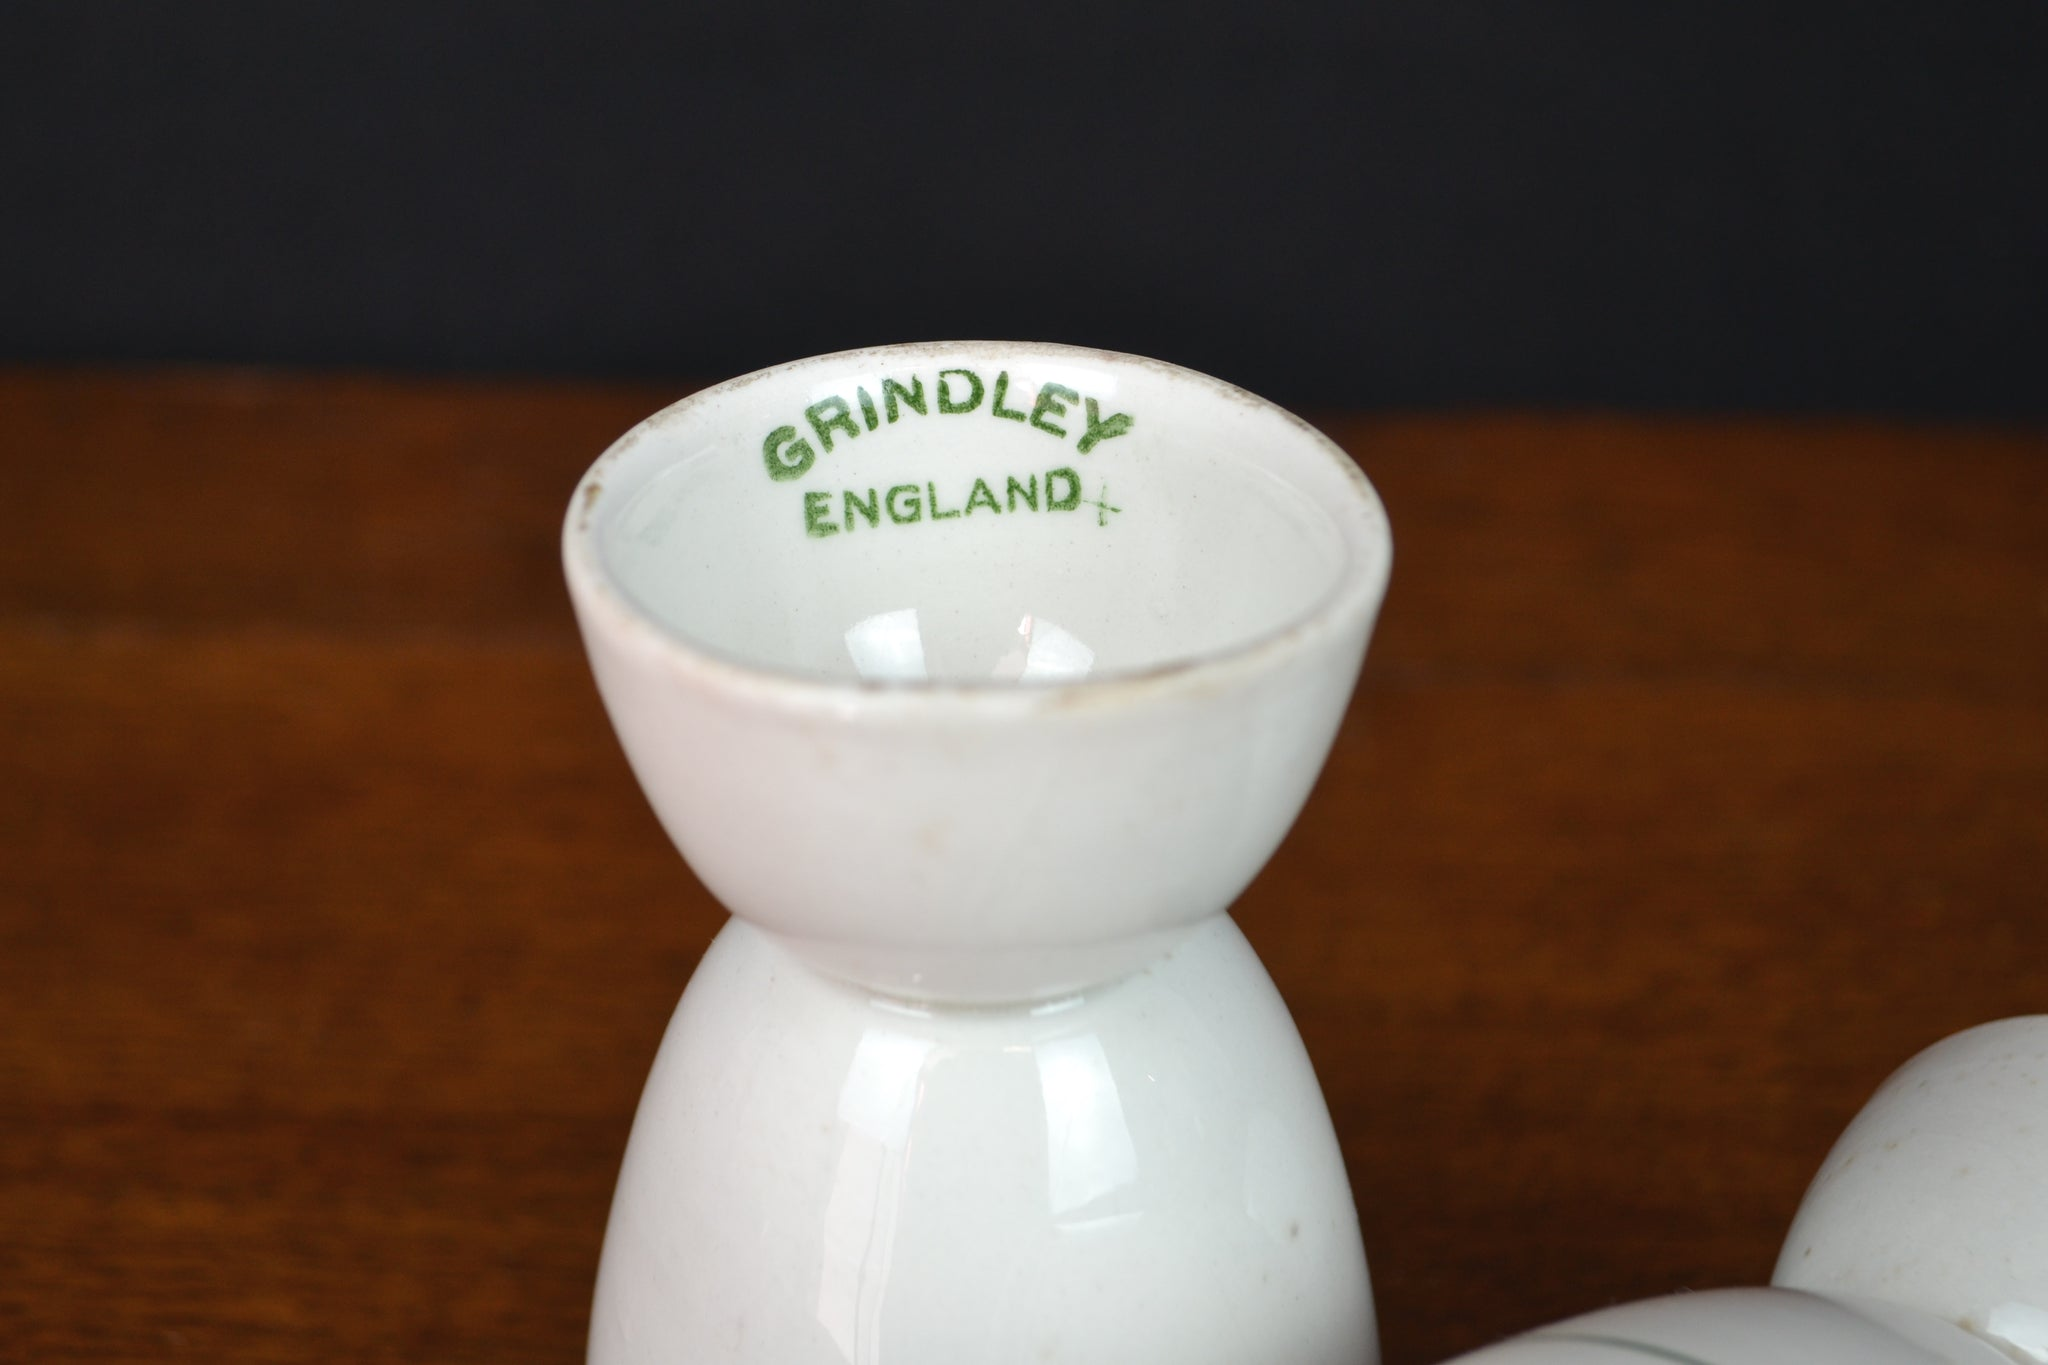 Grindley green stripe double egg cups